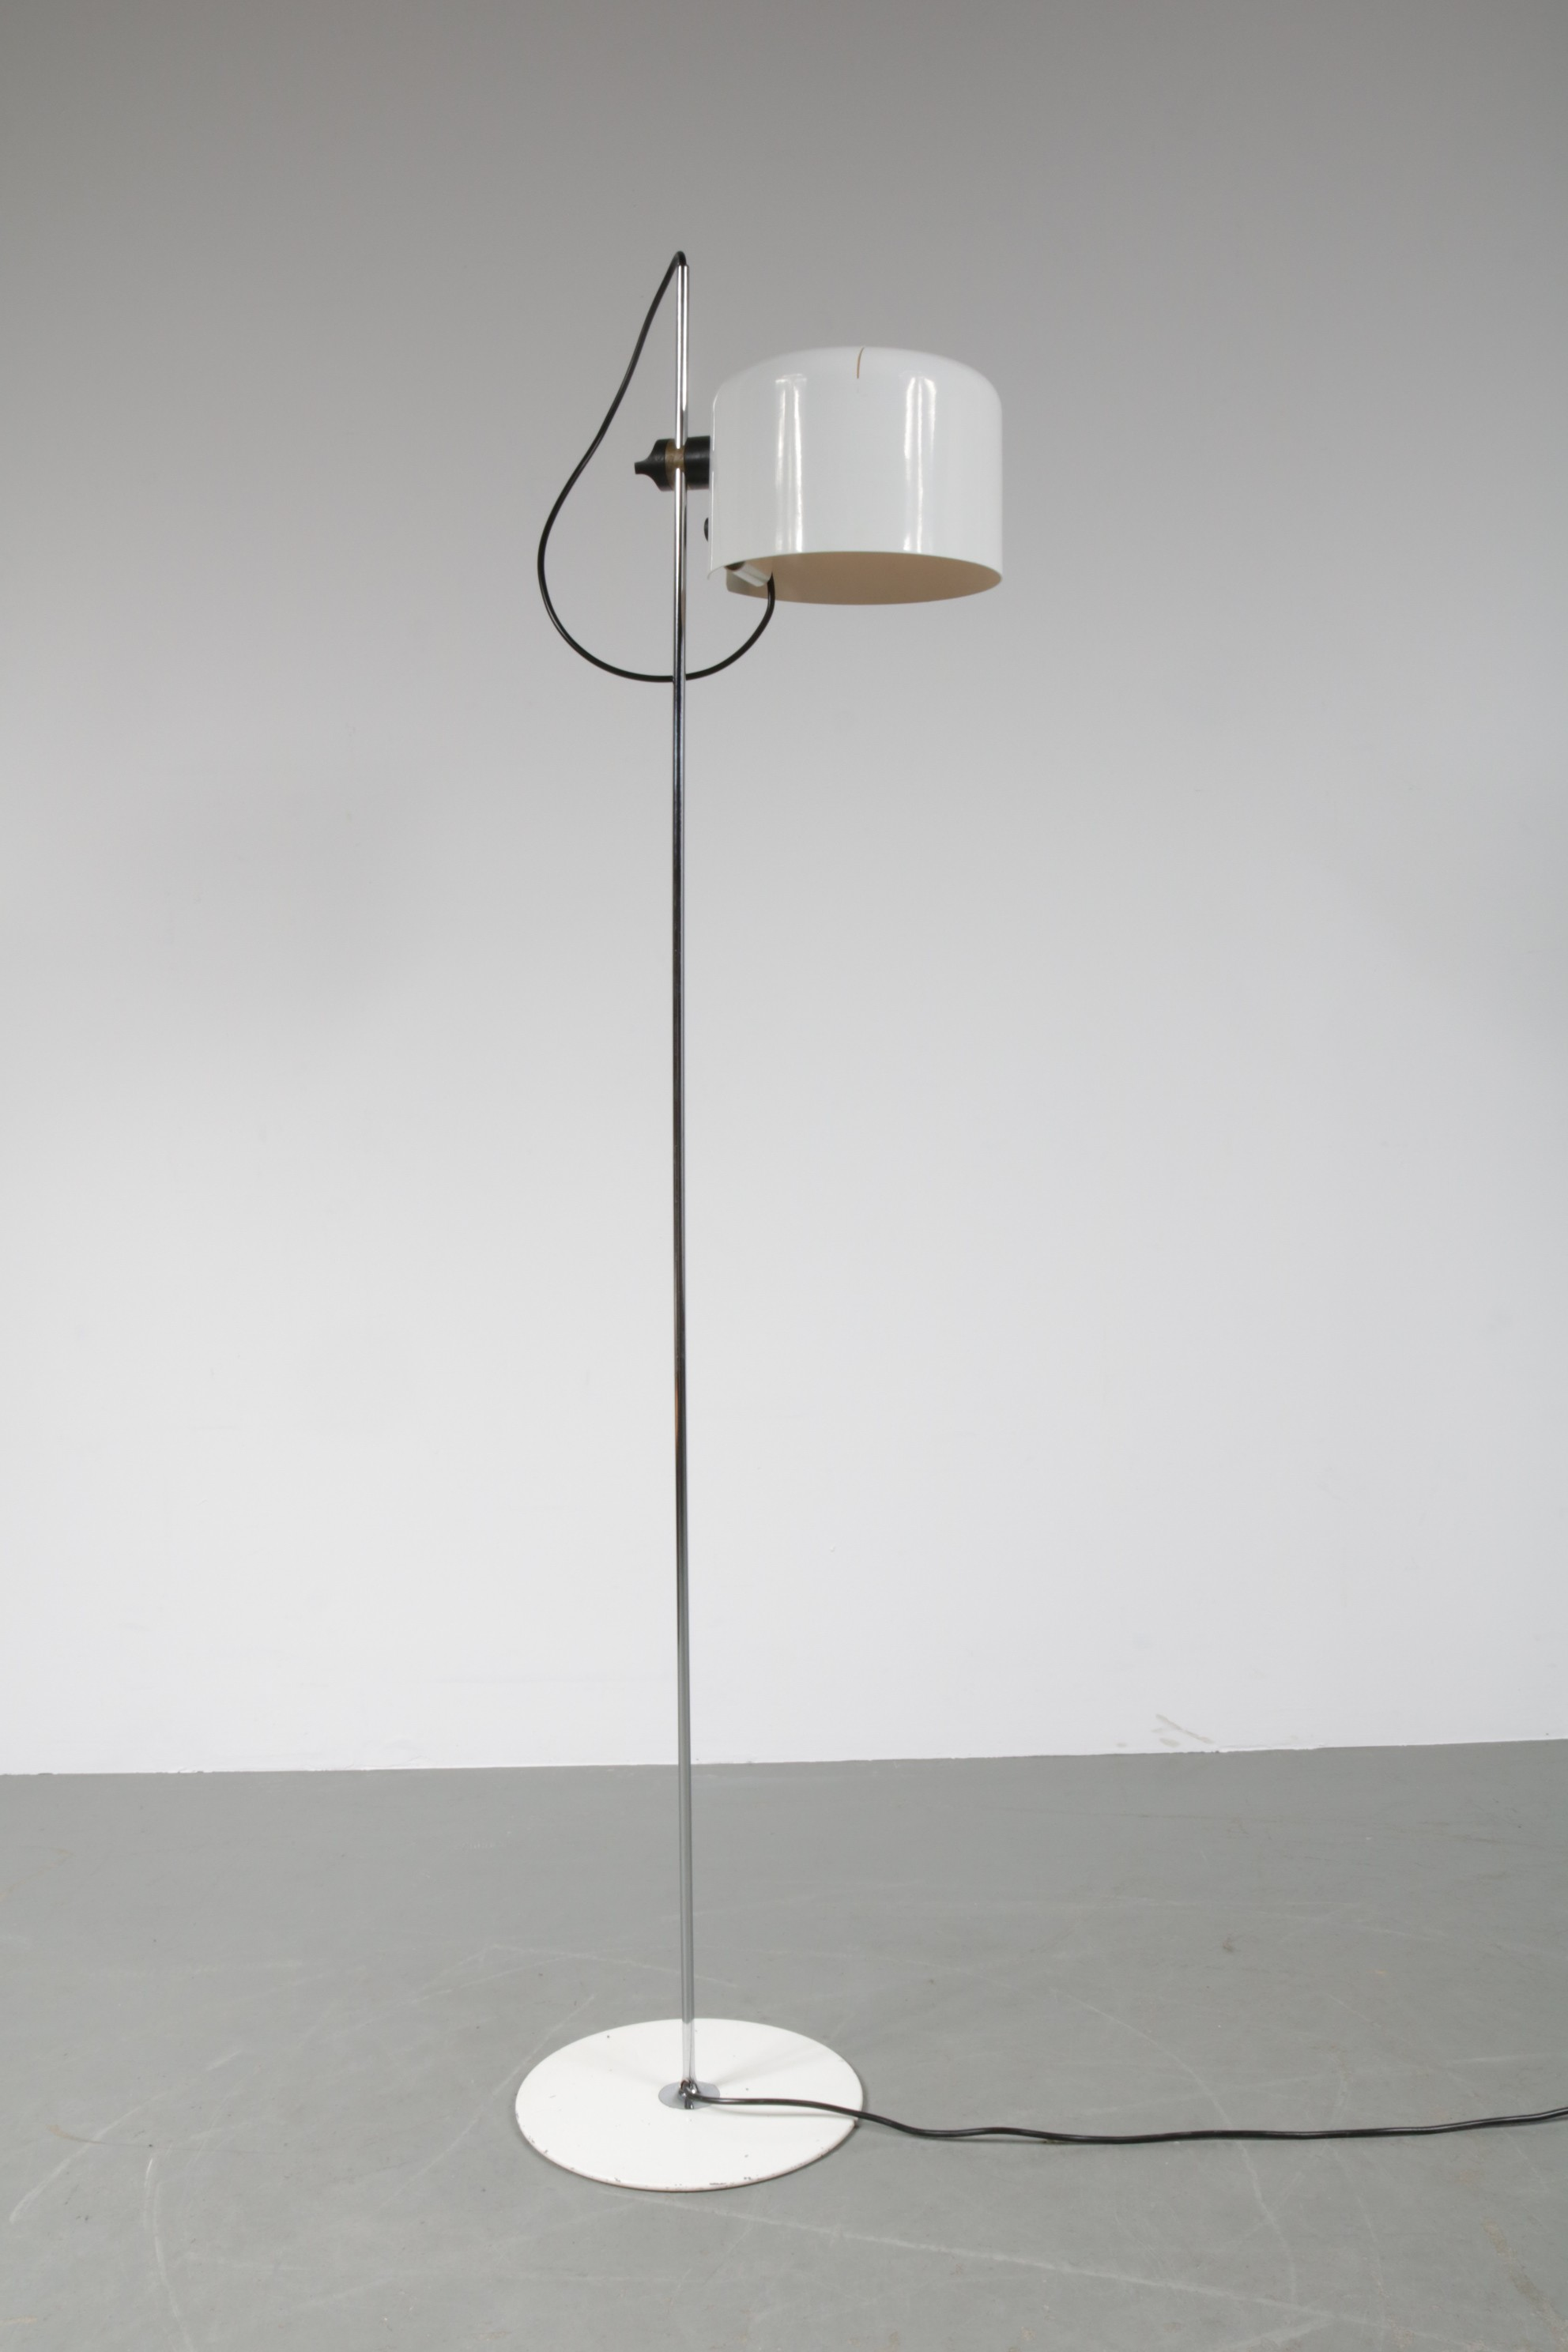 nsyd awesome best inspiration luxury high furniture and concept of floor stockholm picture alma decor design lamp unique ikea the lamps white end